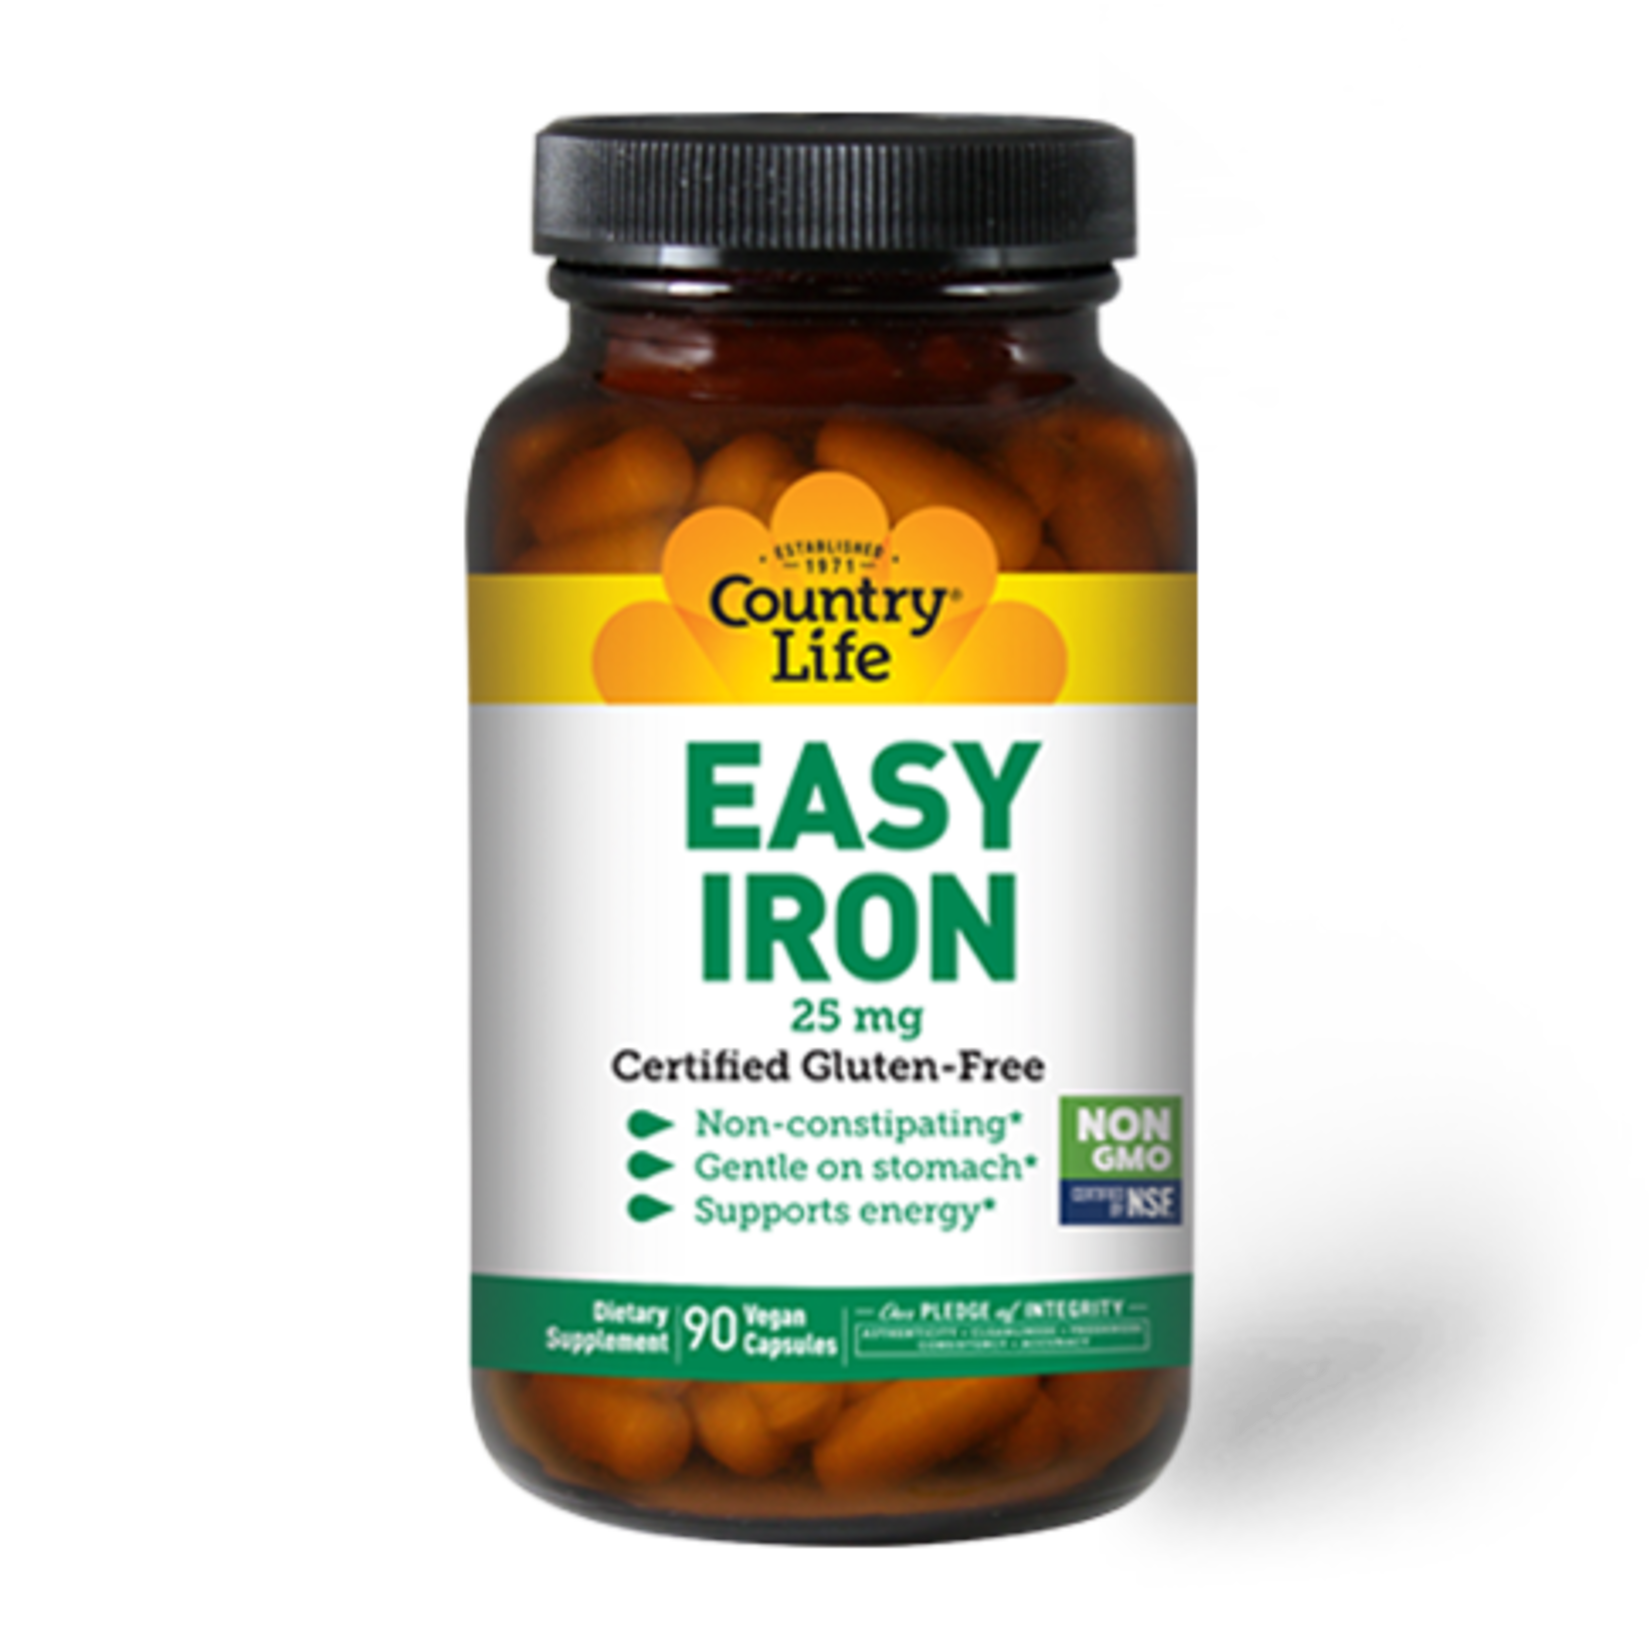 Country Life Country Life Easy Iron 25mg 90 Vegicap